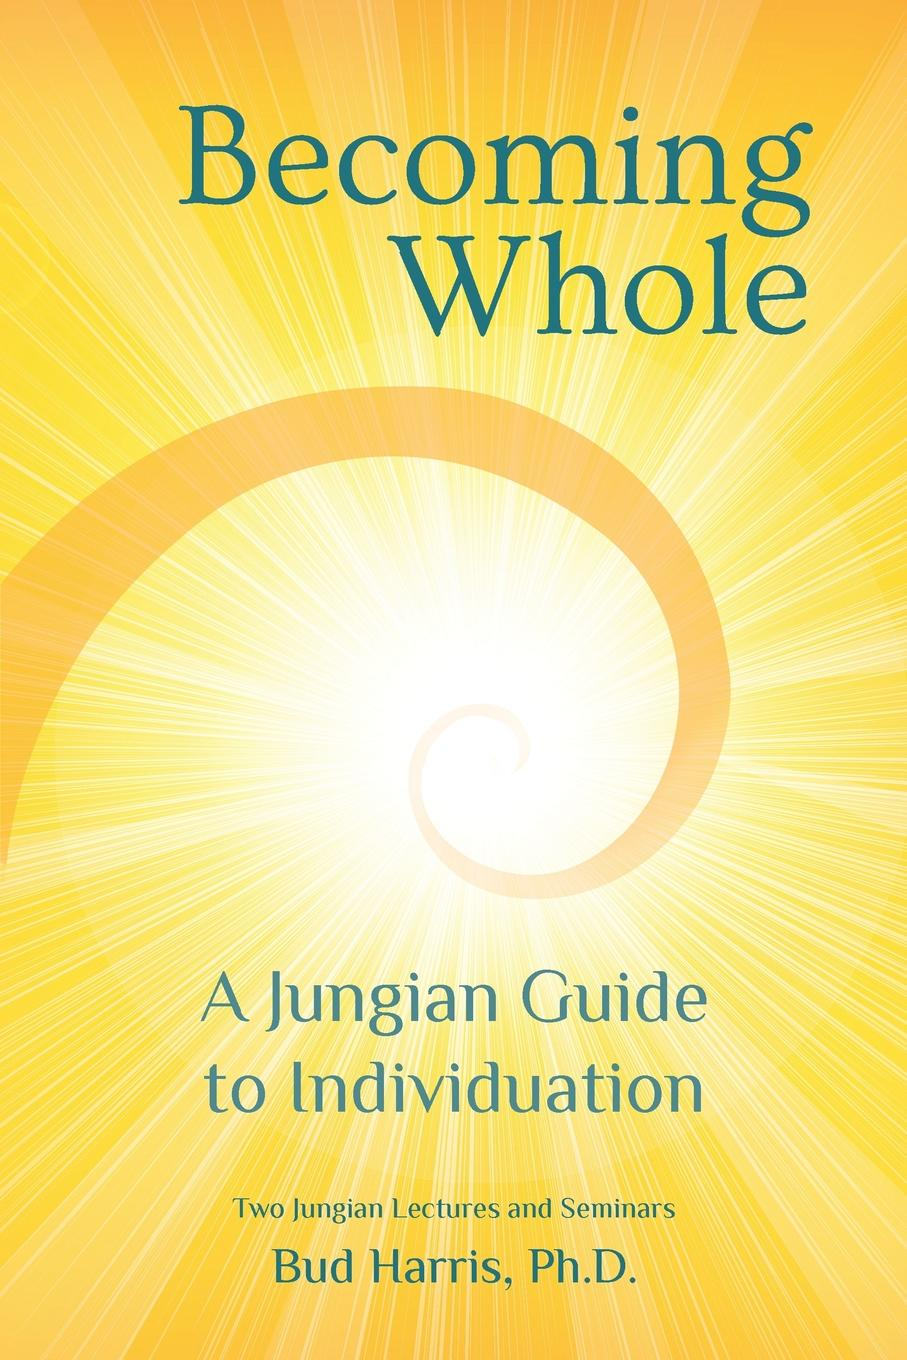 Ph.D. Bud Harris Becoming Whole. A Jungian Guide to Individuation